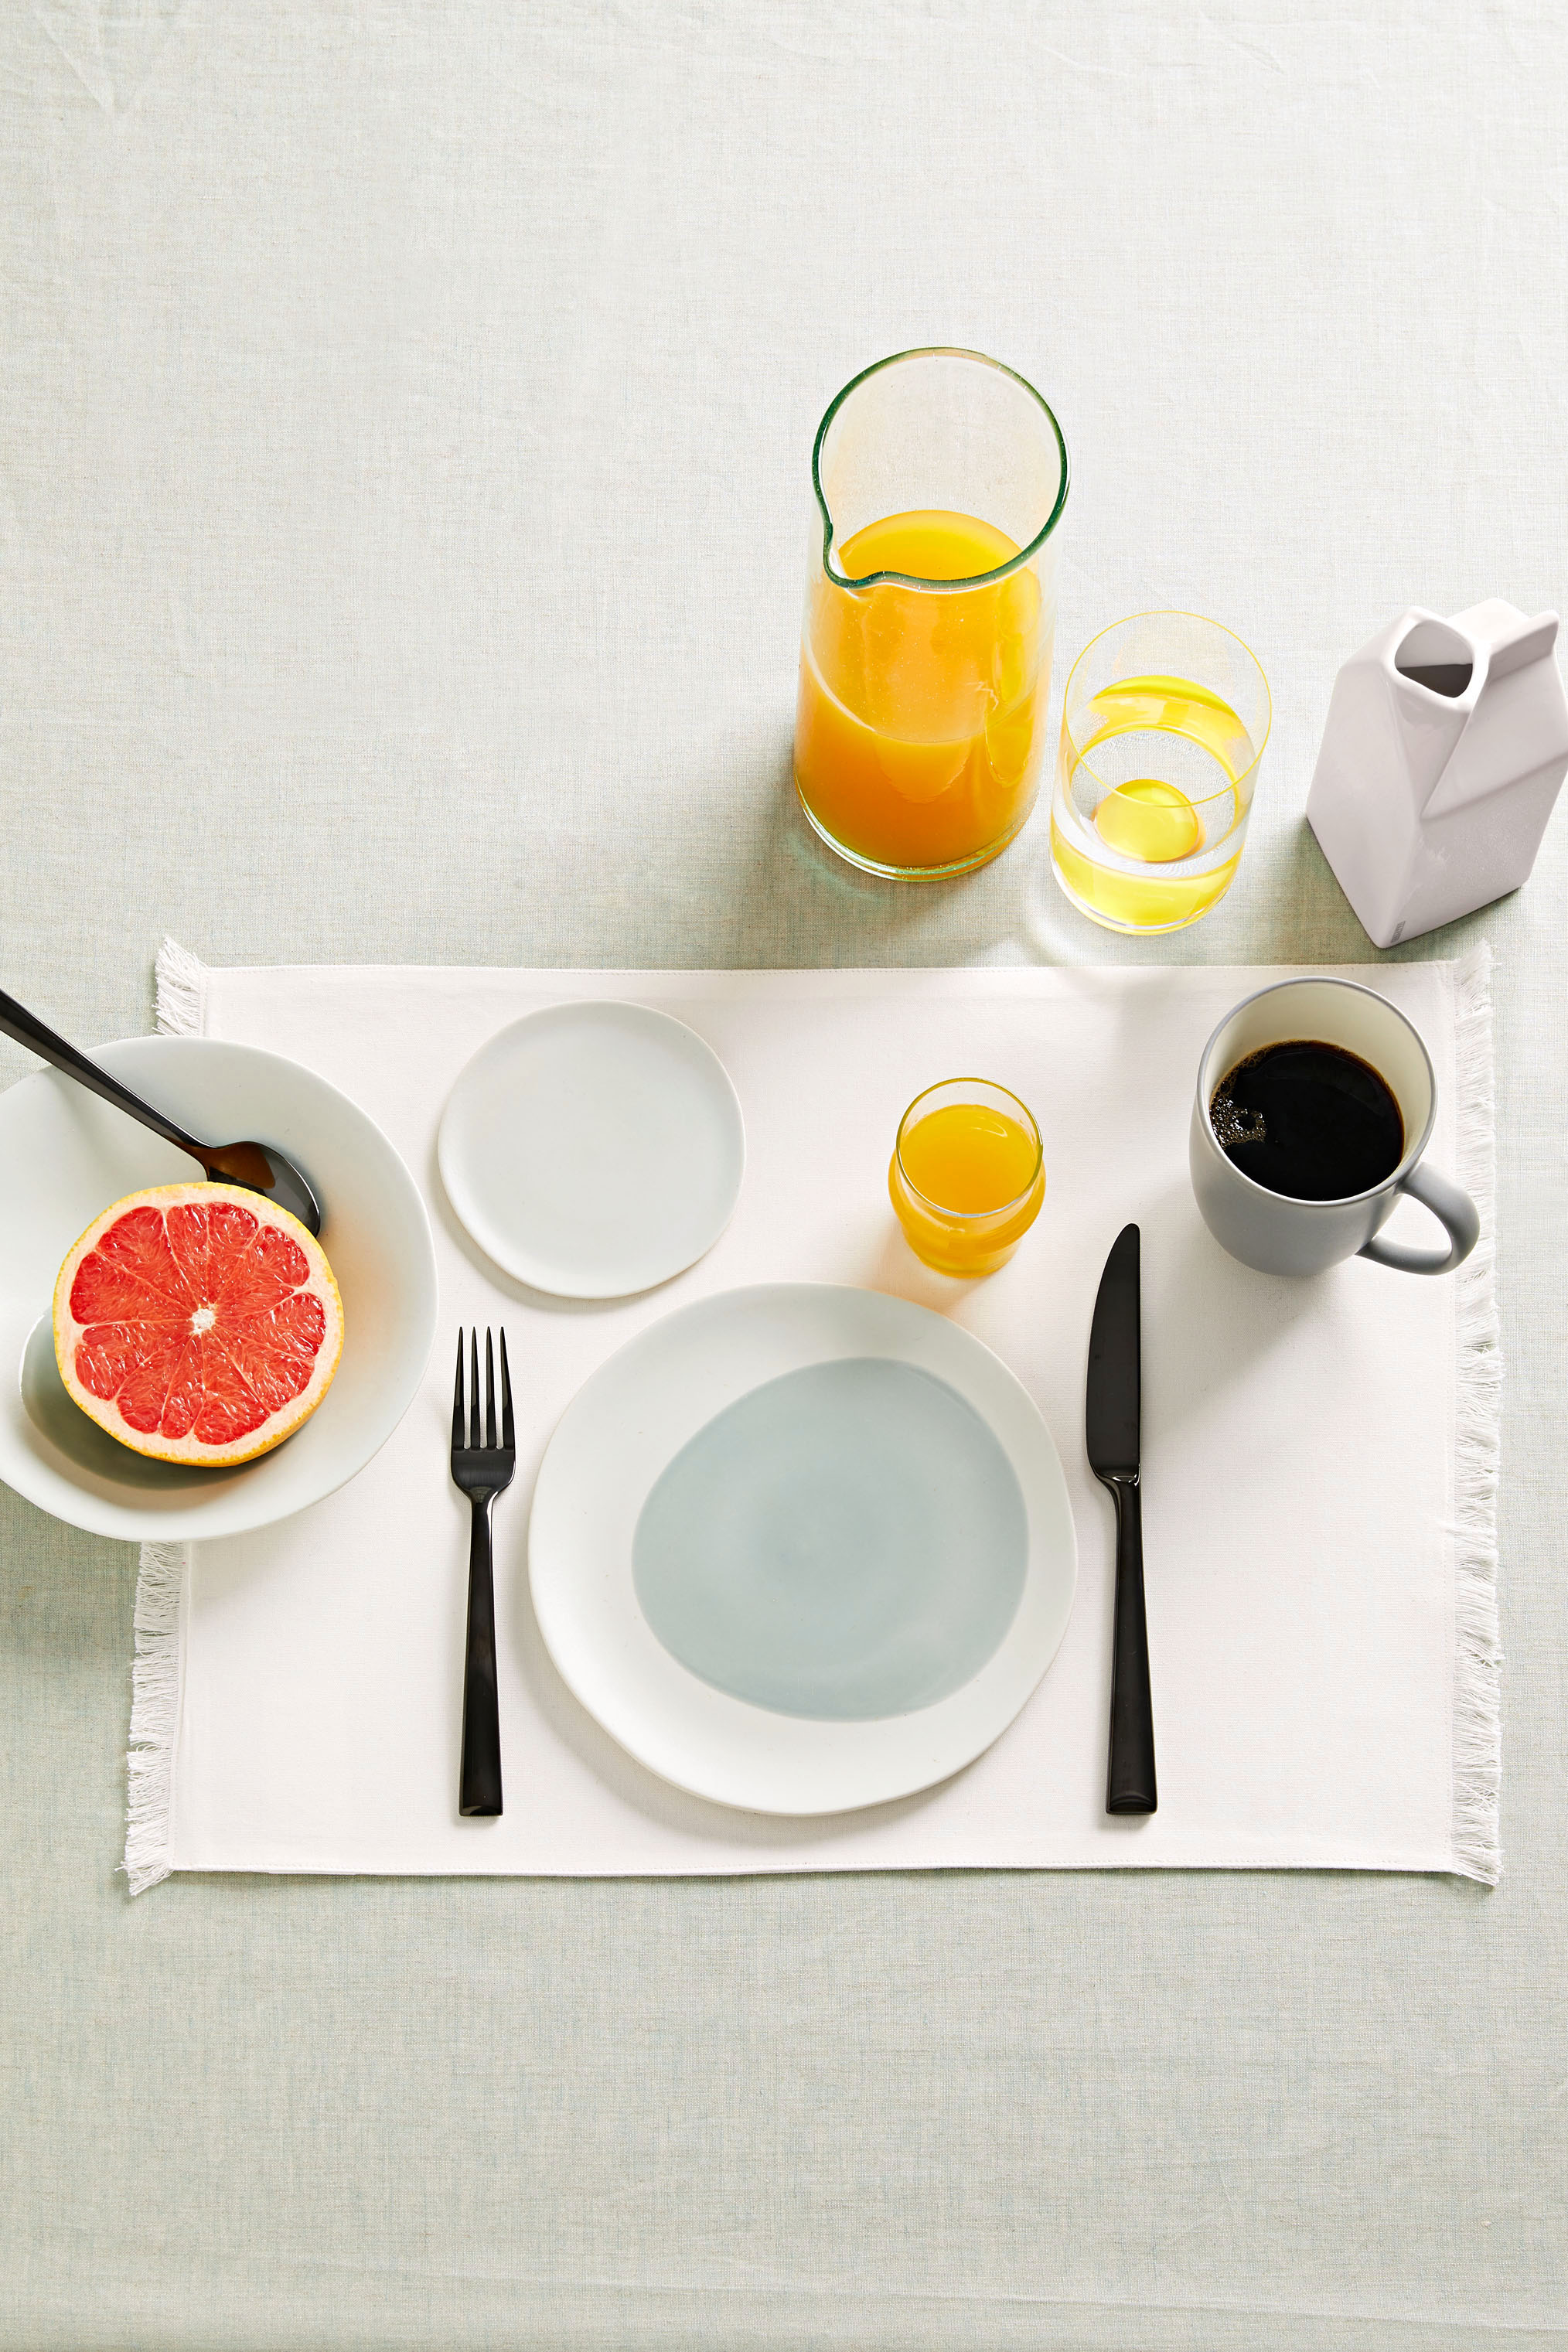 5 Breakfast Ideas Every Bride-to-Be Should Add to Her Routine